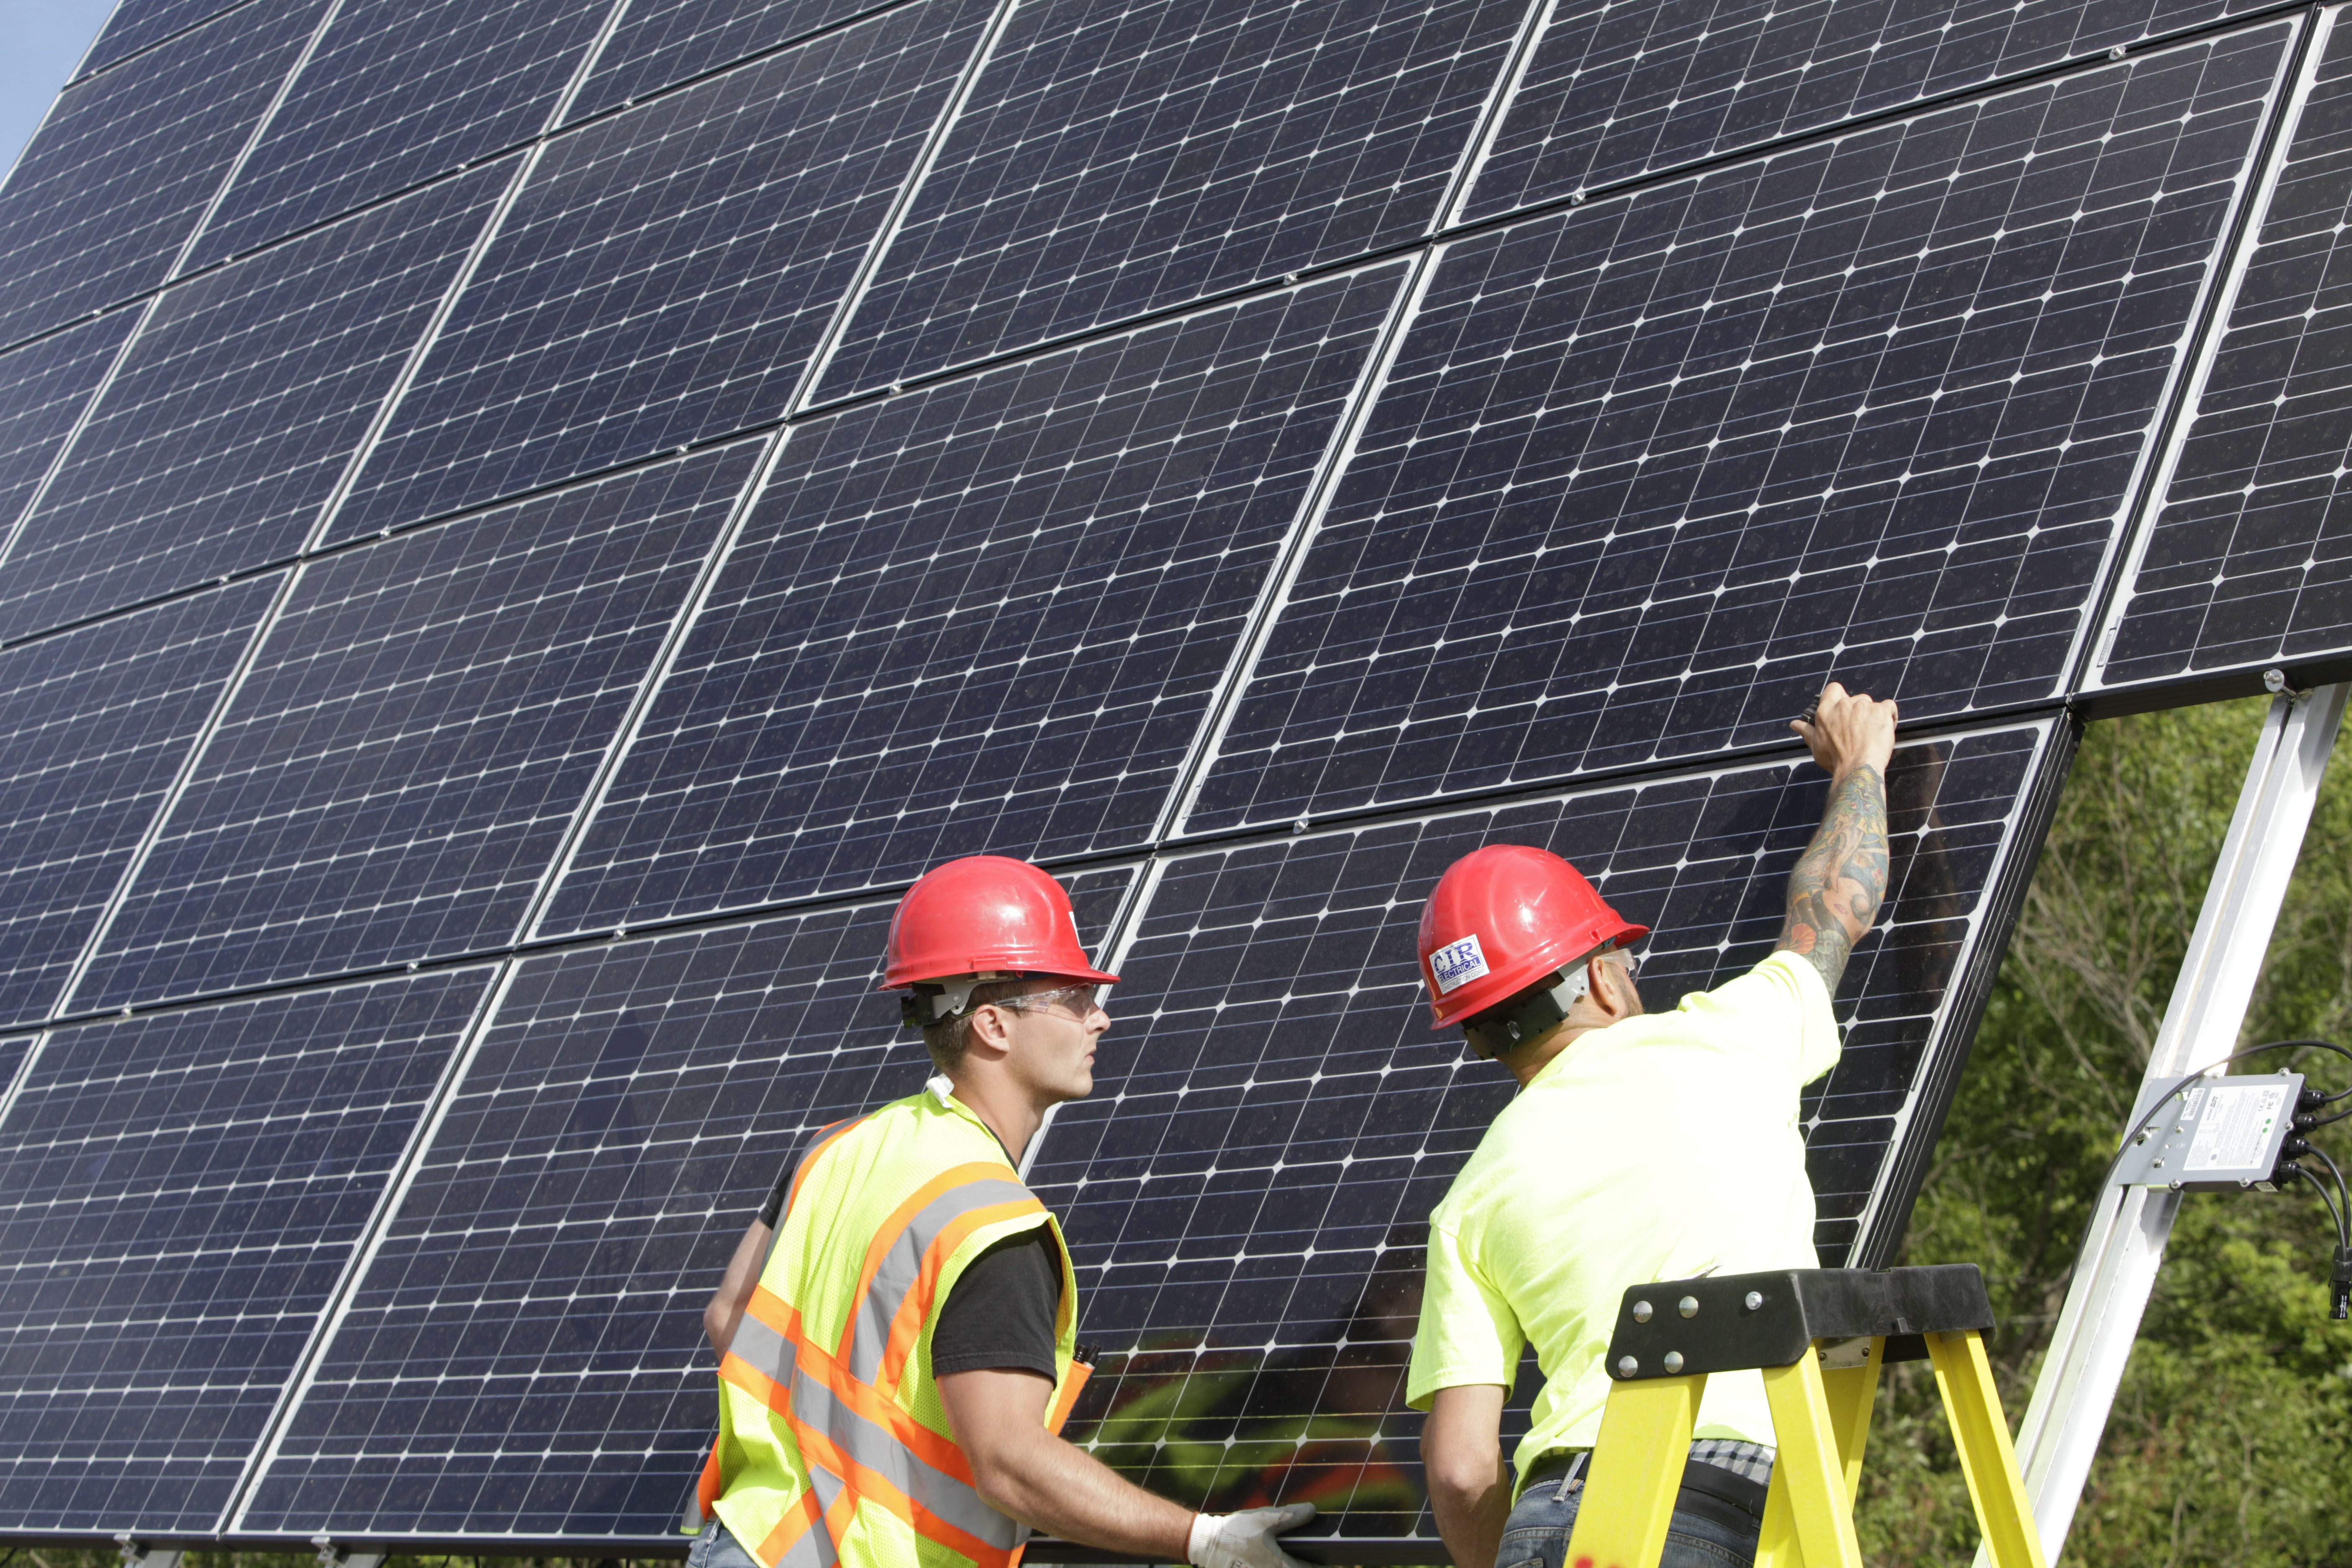 Edward Sarcione, left, and electrician Joe Kilijanski of CIR Electrical Construction Corp. install an array of solar panels made by Silevo on a 'tracker' system that automatically follows the sun to optimize the system's performance at a residence in Marilla, Friday, June 20, 2014.  (Derek Gee/Buffalo News)